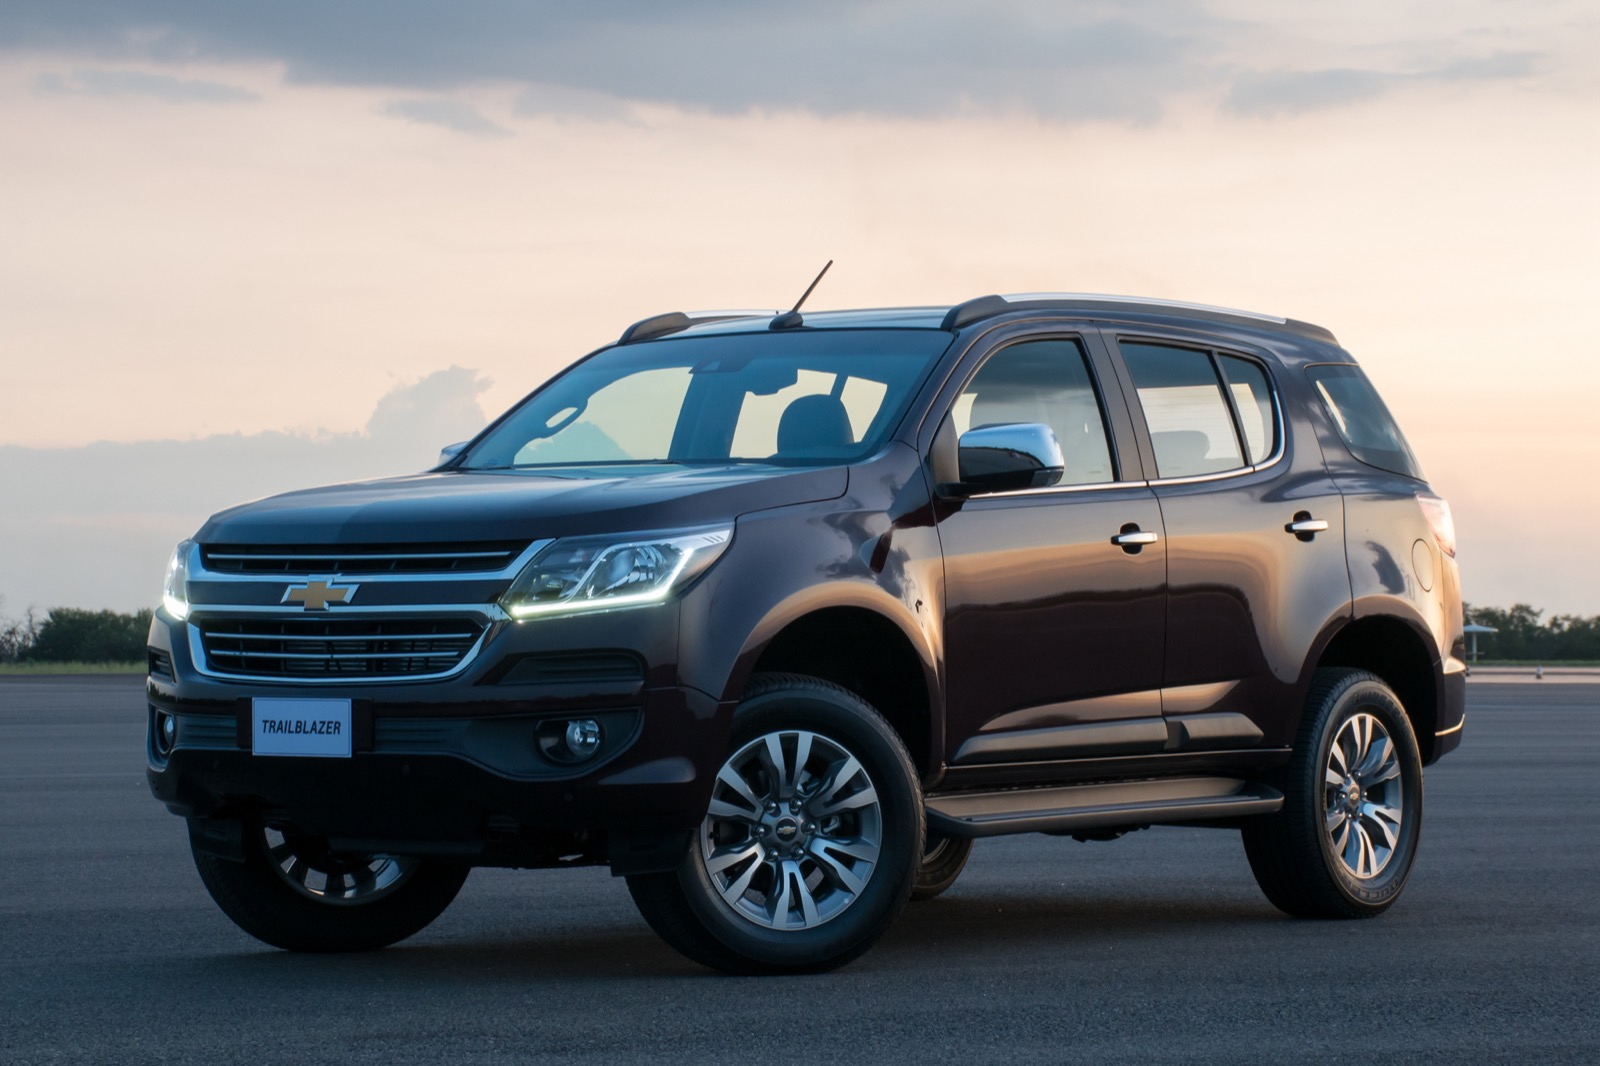 2020 CHEVROLET TRAILBLAZER LTZ AT 2.8